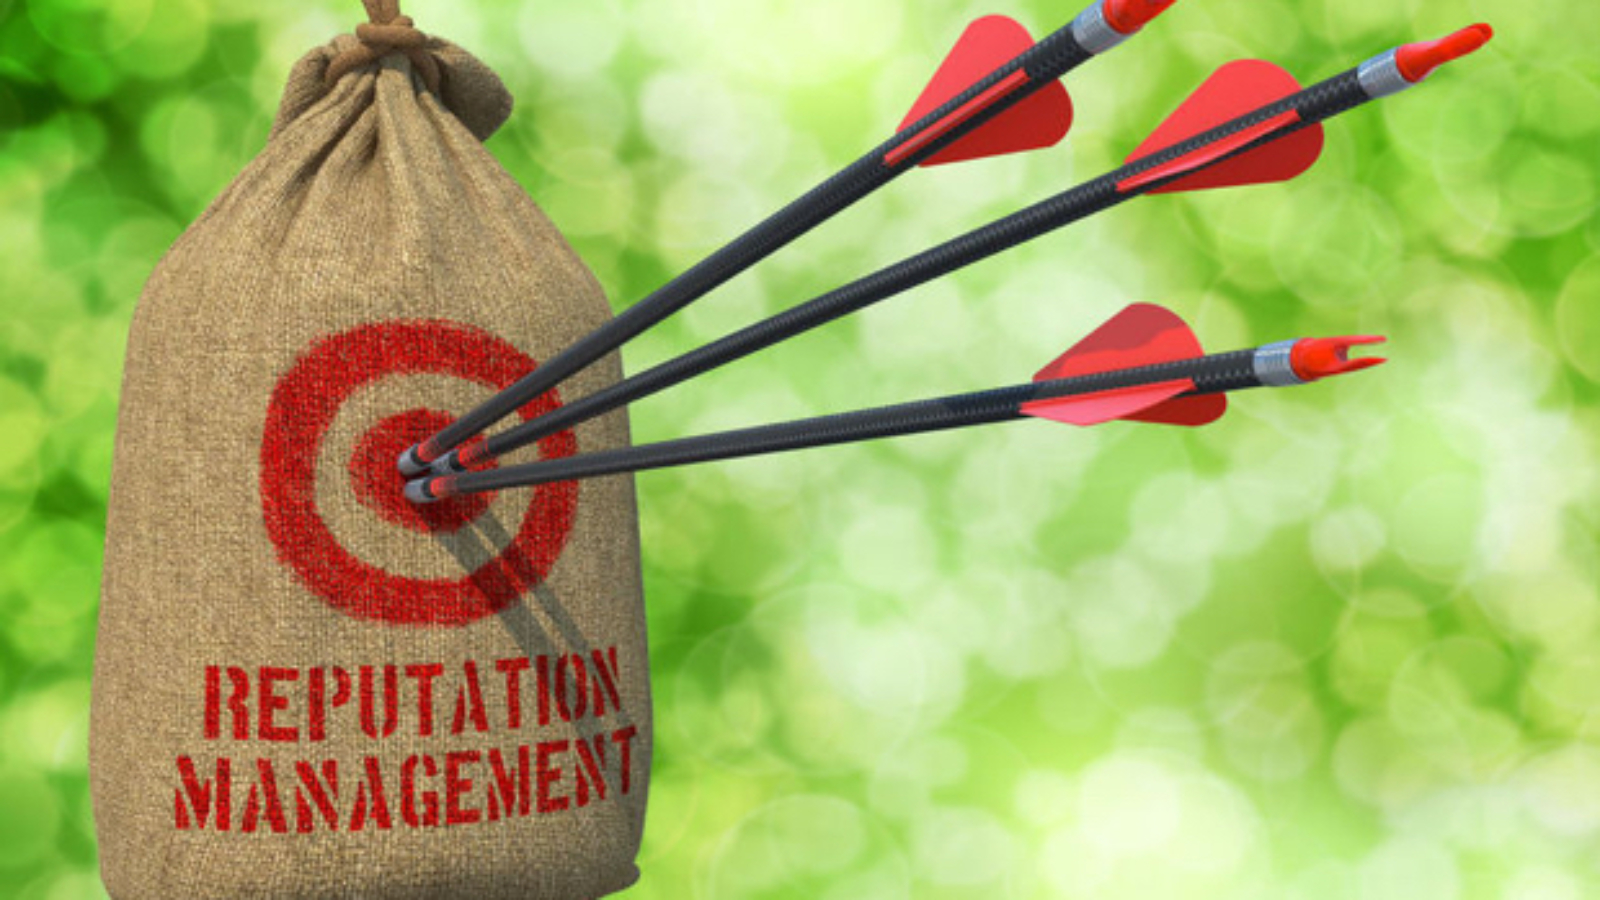 29751937 - reputation management  - three arrows hit in red target on a hanging sack on green bokeh background